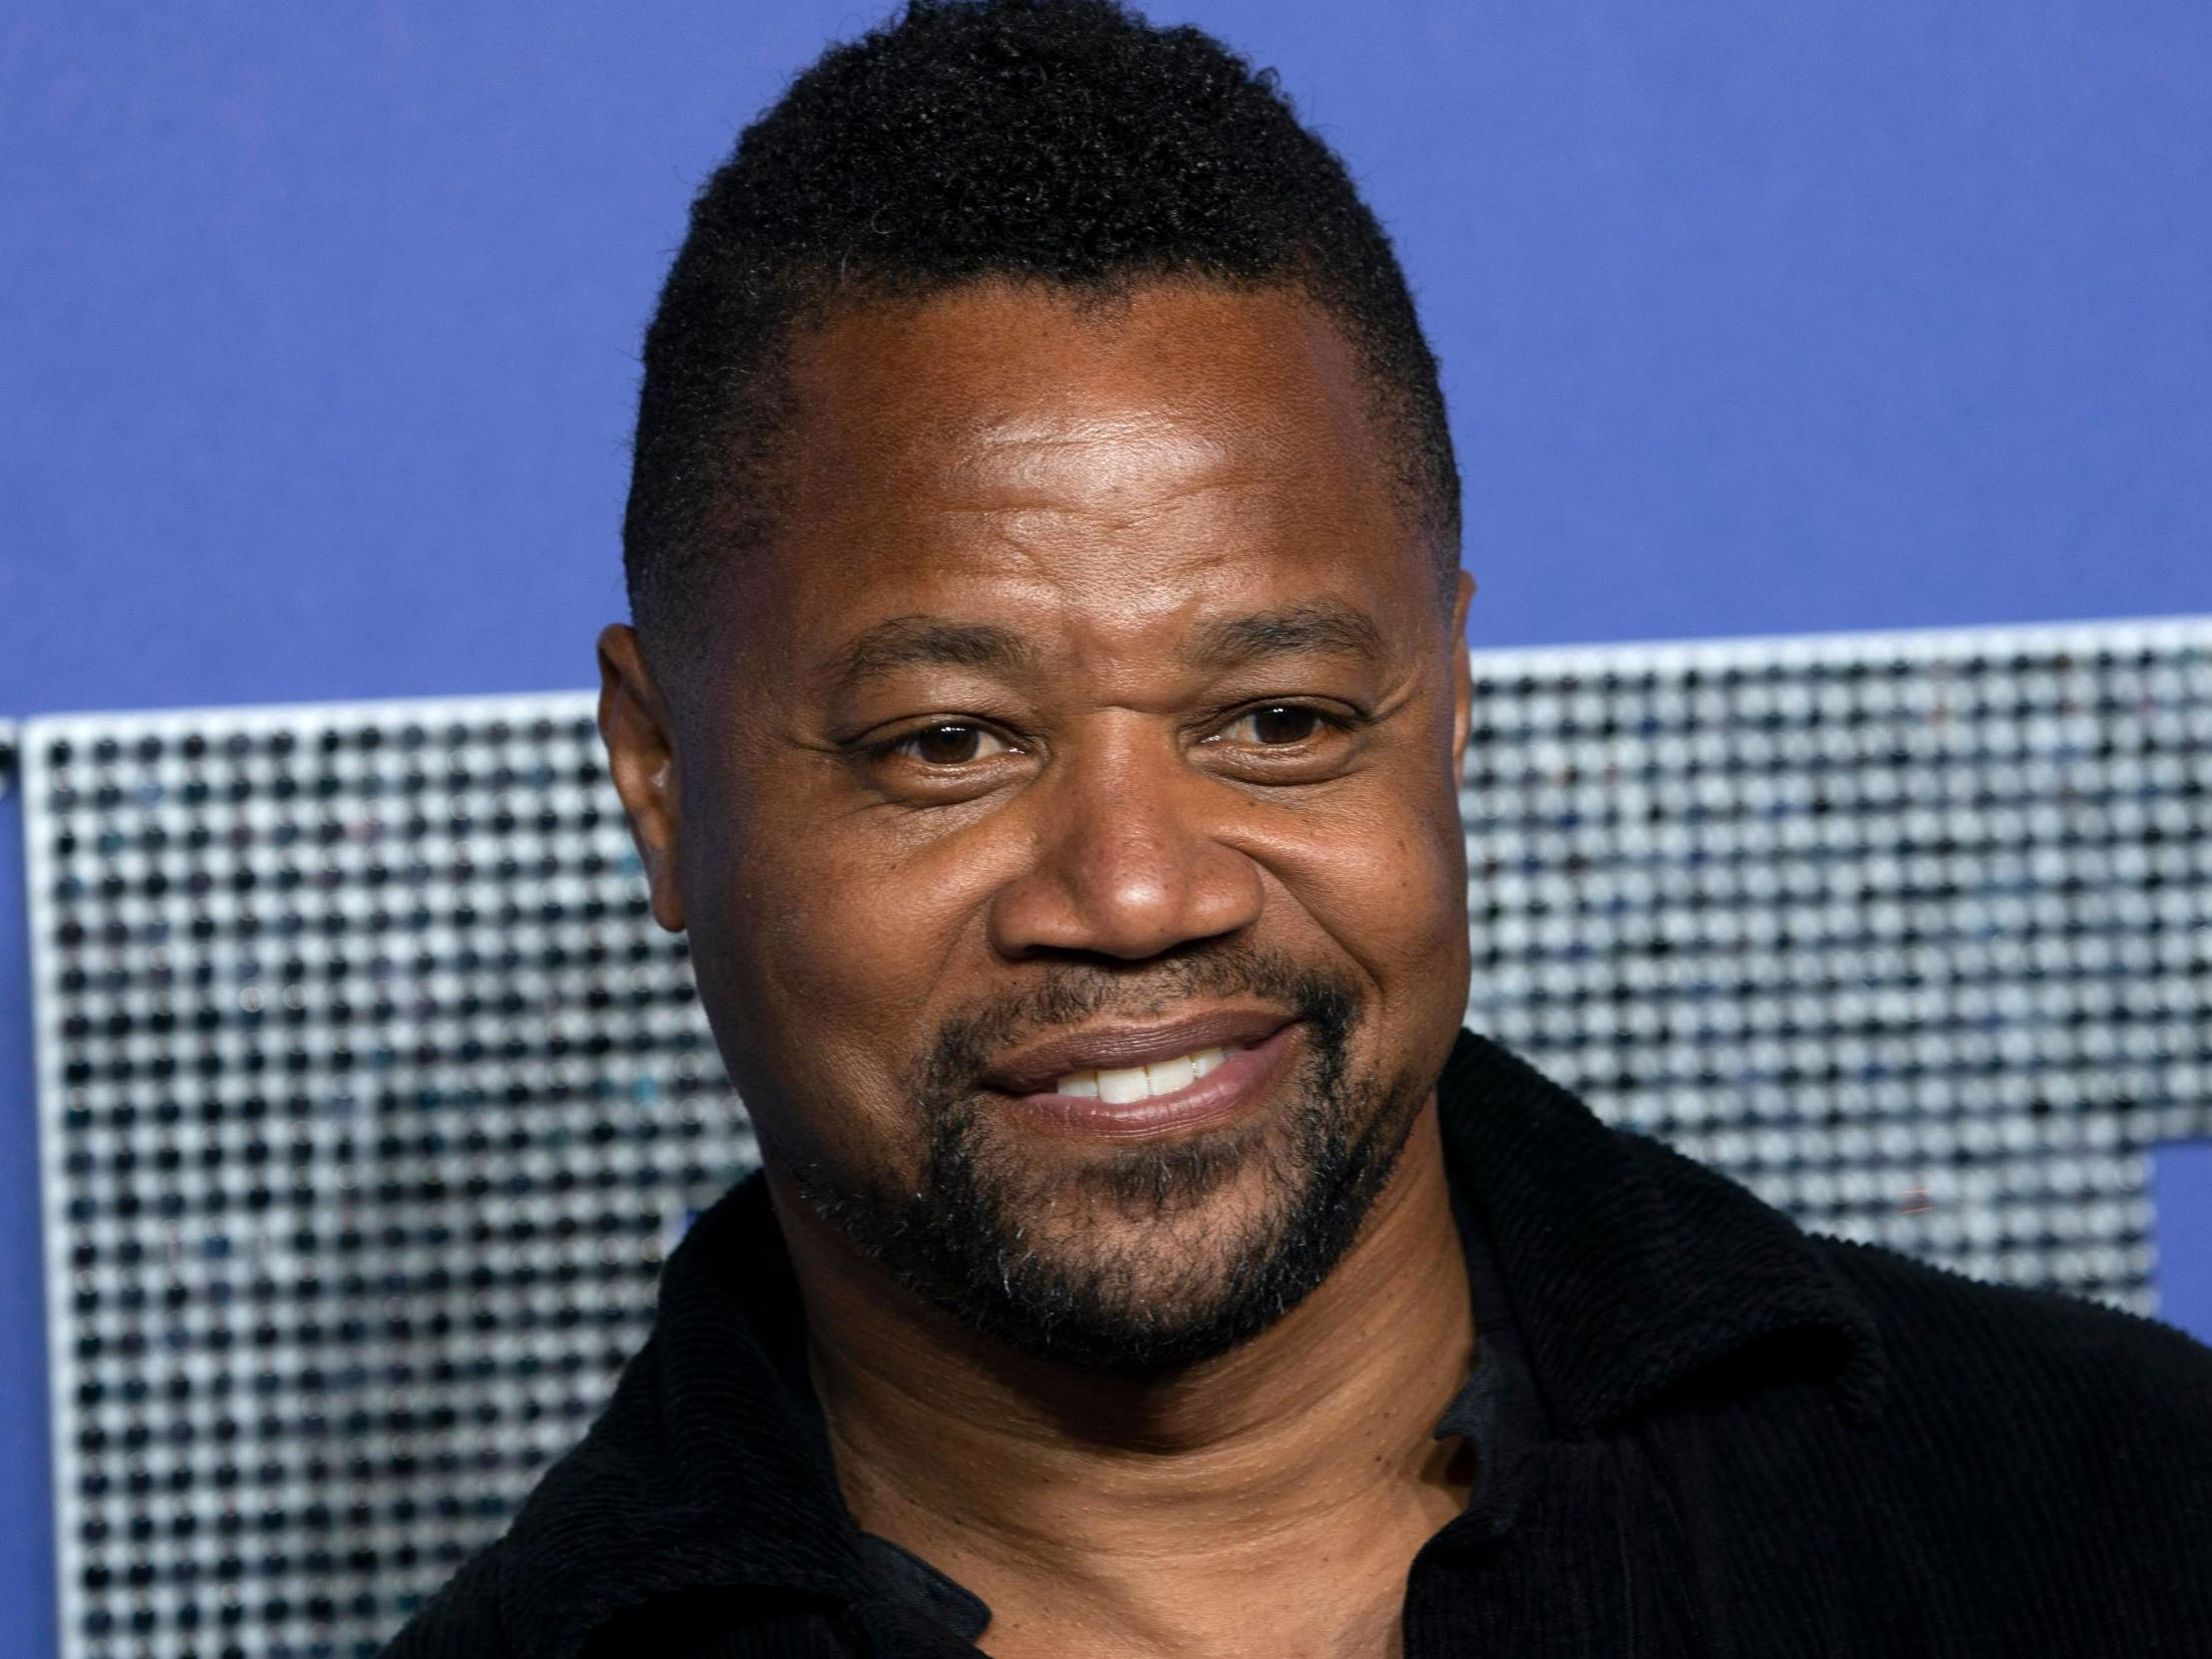 Cuba Gooding Jr may turn himself into police over groping allegations, says lawyer